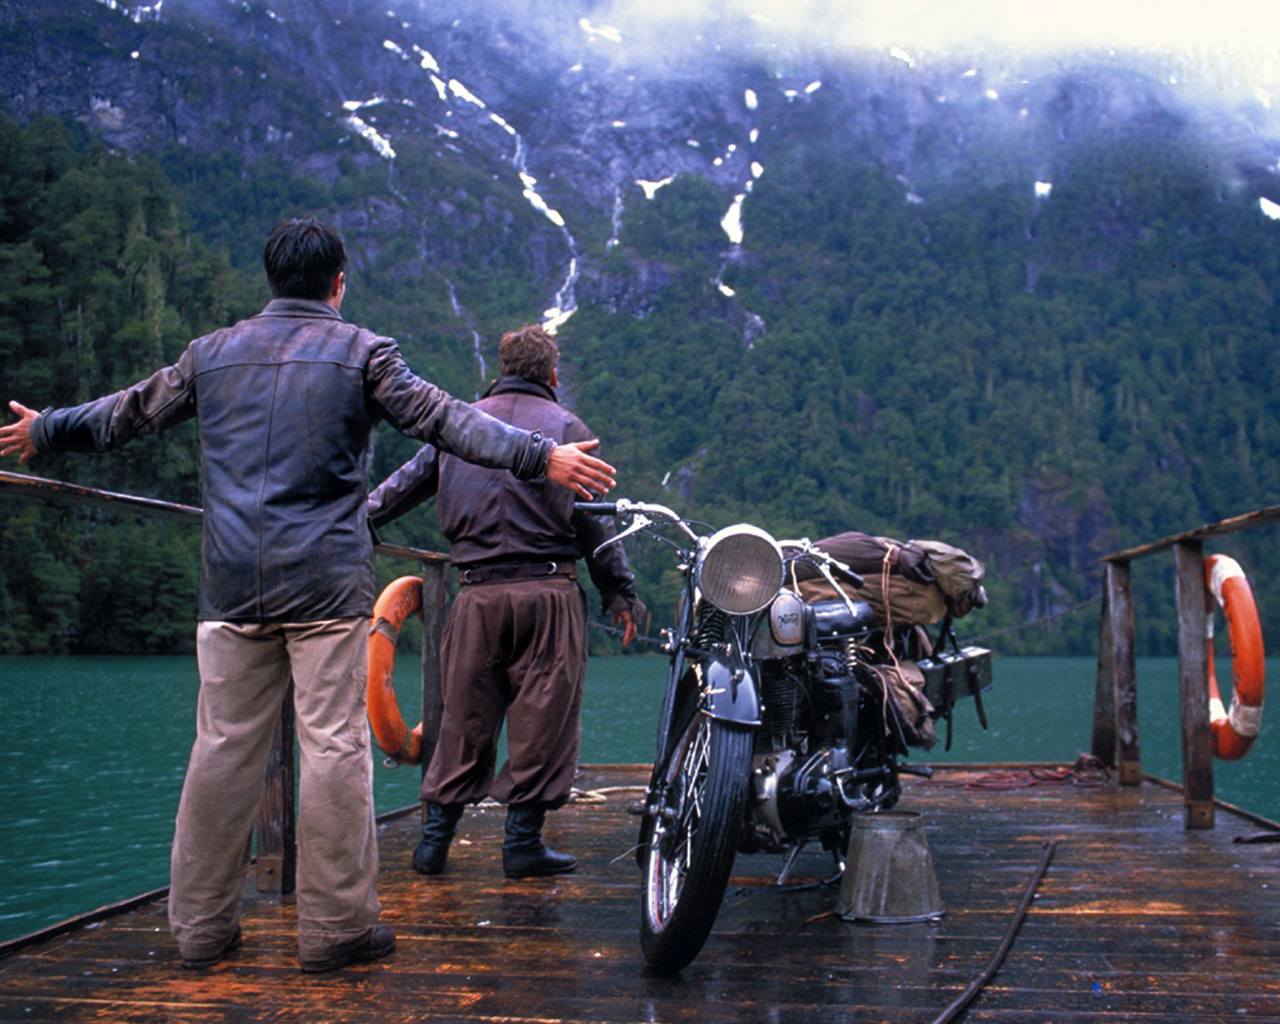 Lindsay Film Review | Che Guevara's Political Awakening in 'The Motorcycle Diaries'